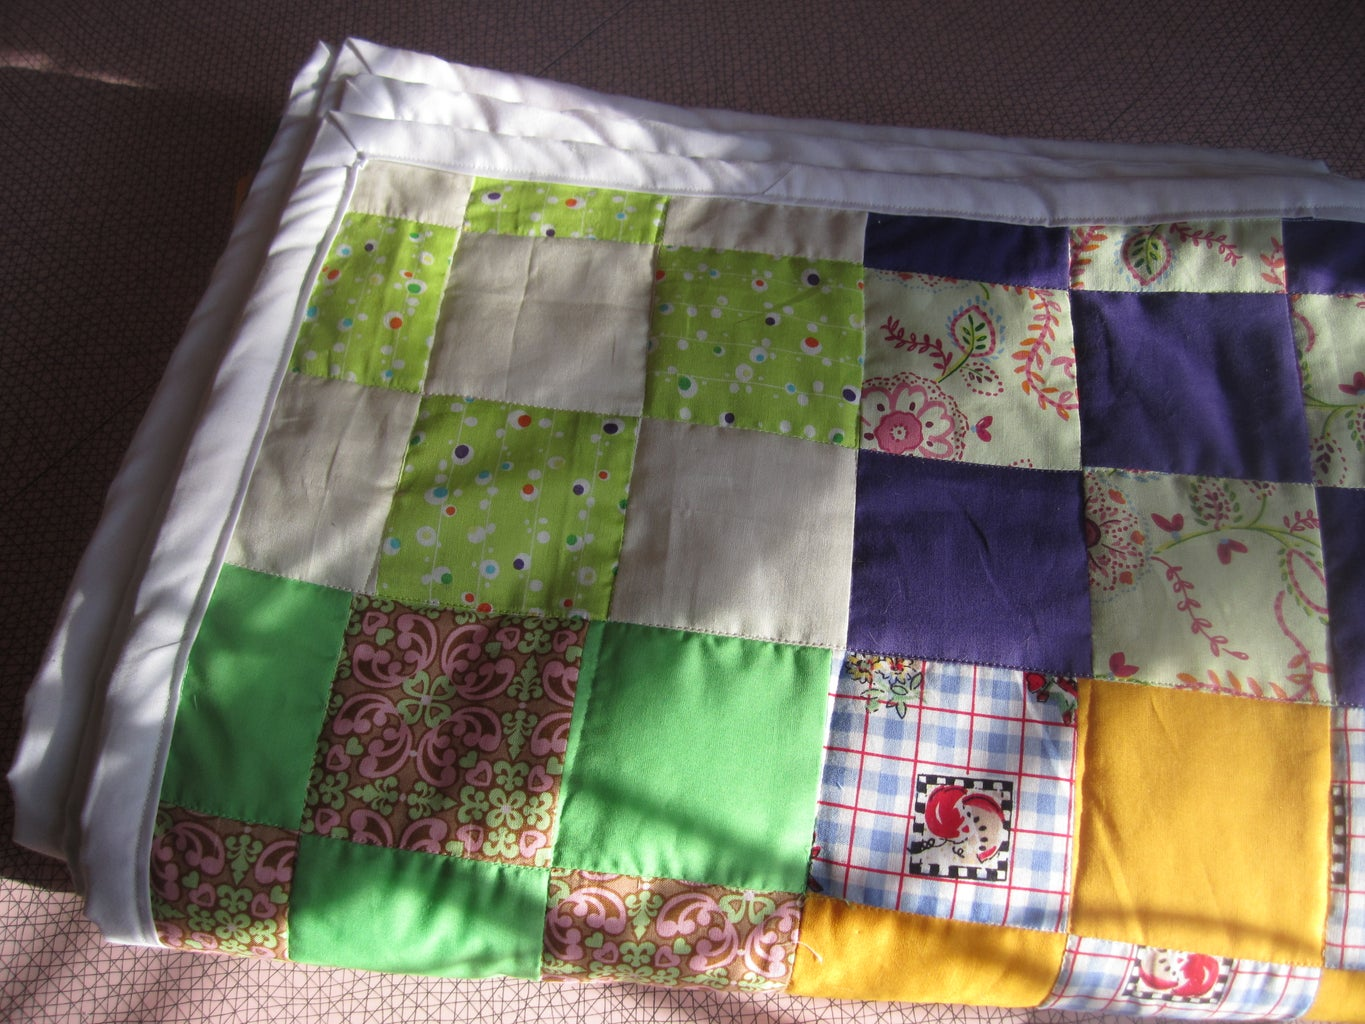 More Photos of the Finished Quilt.